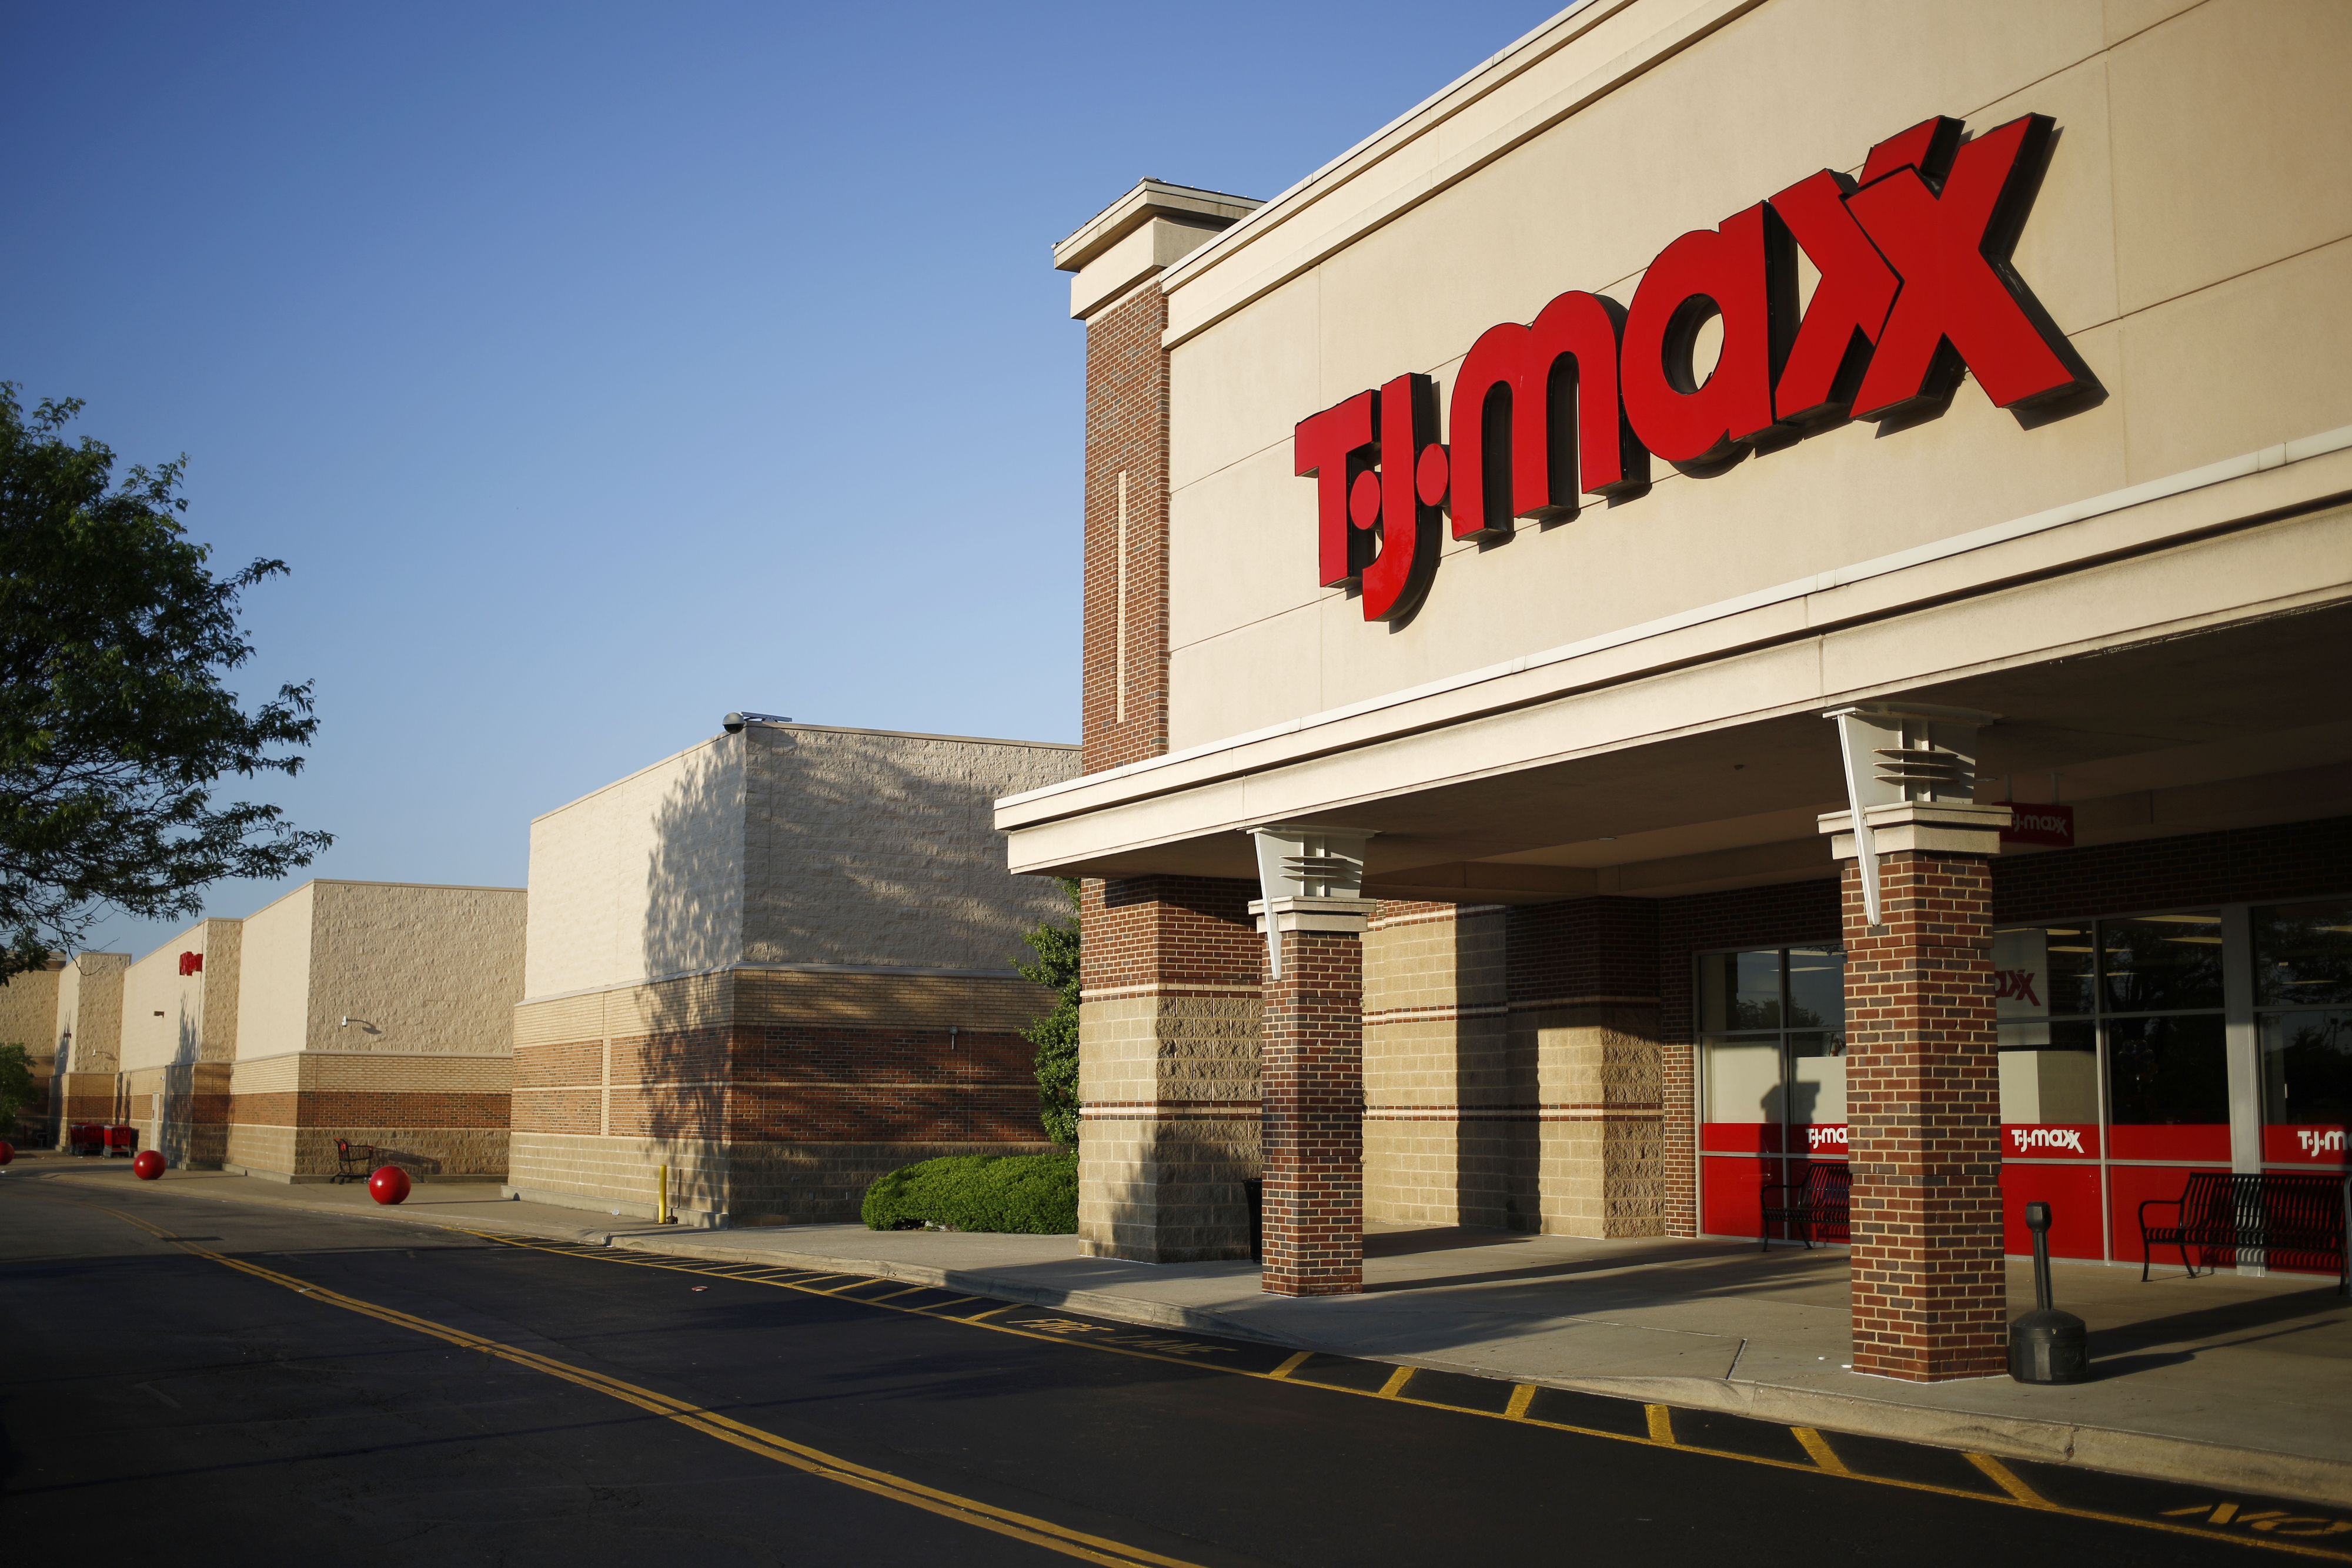 TJ Maxx, Marshalls, And Home Goods Stores Ahead Of The TJX Cos. Earnings Figures